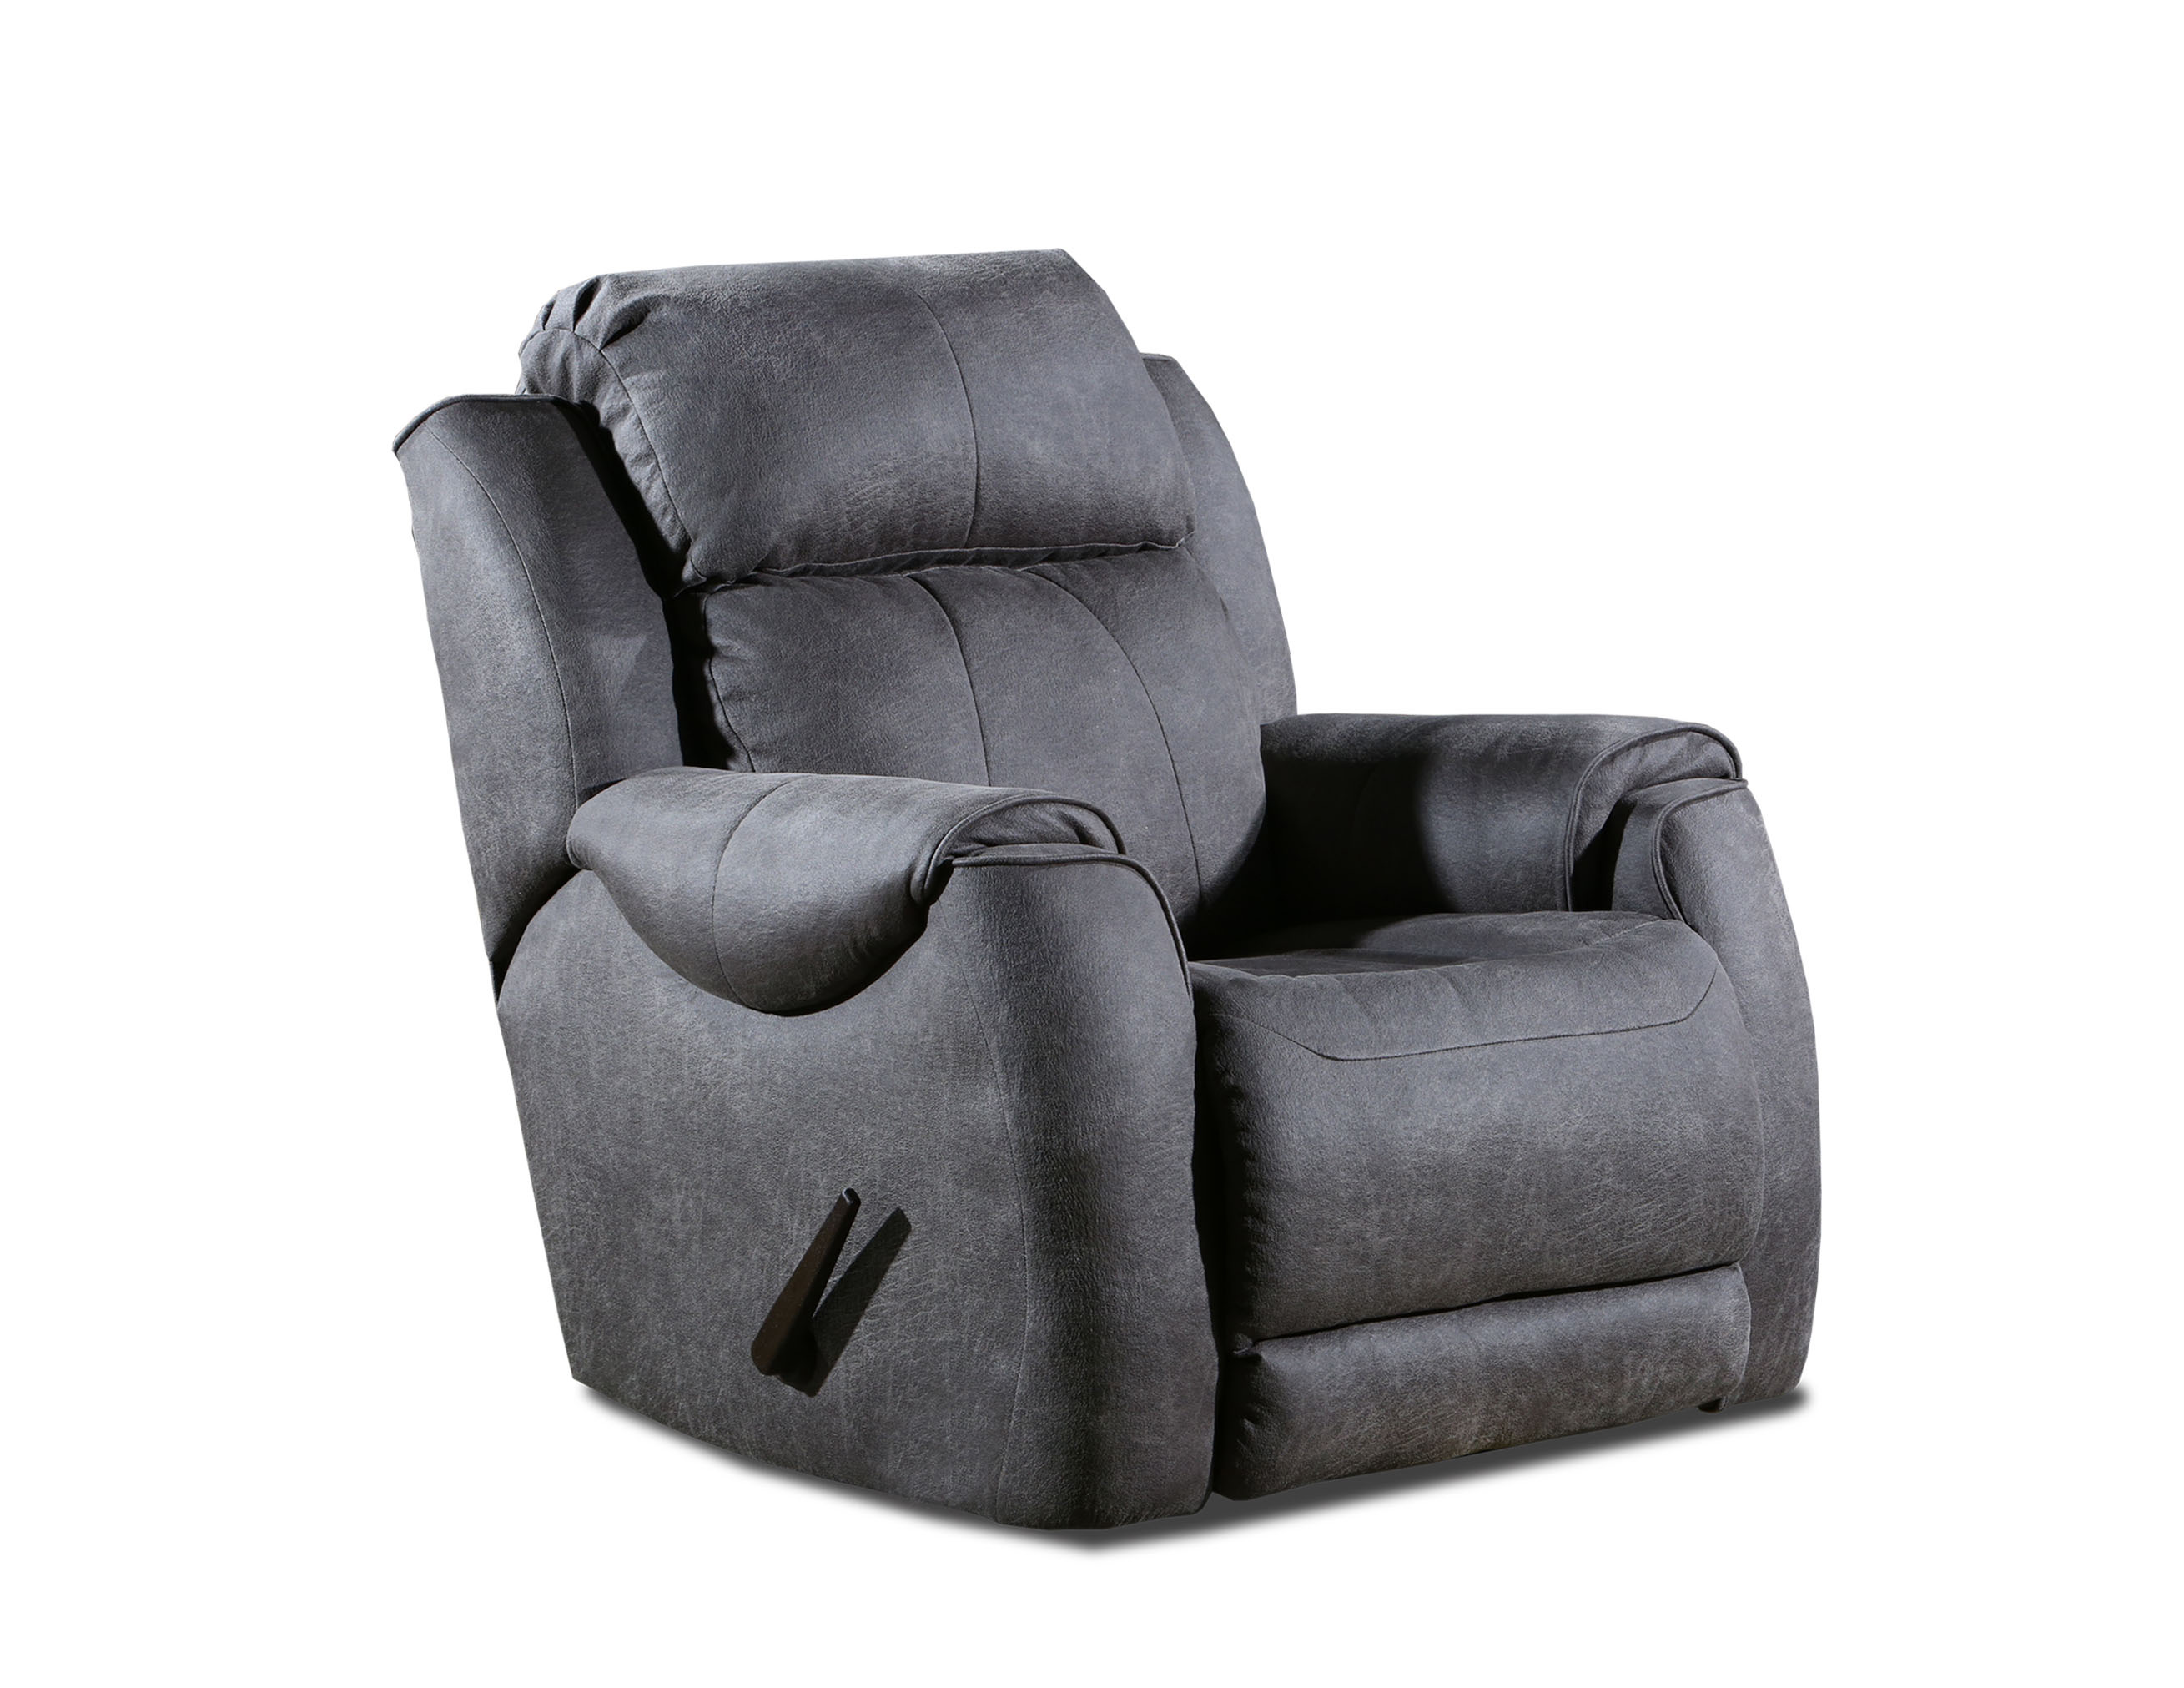 1757 Safe Bet Recliner Image